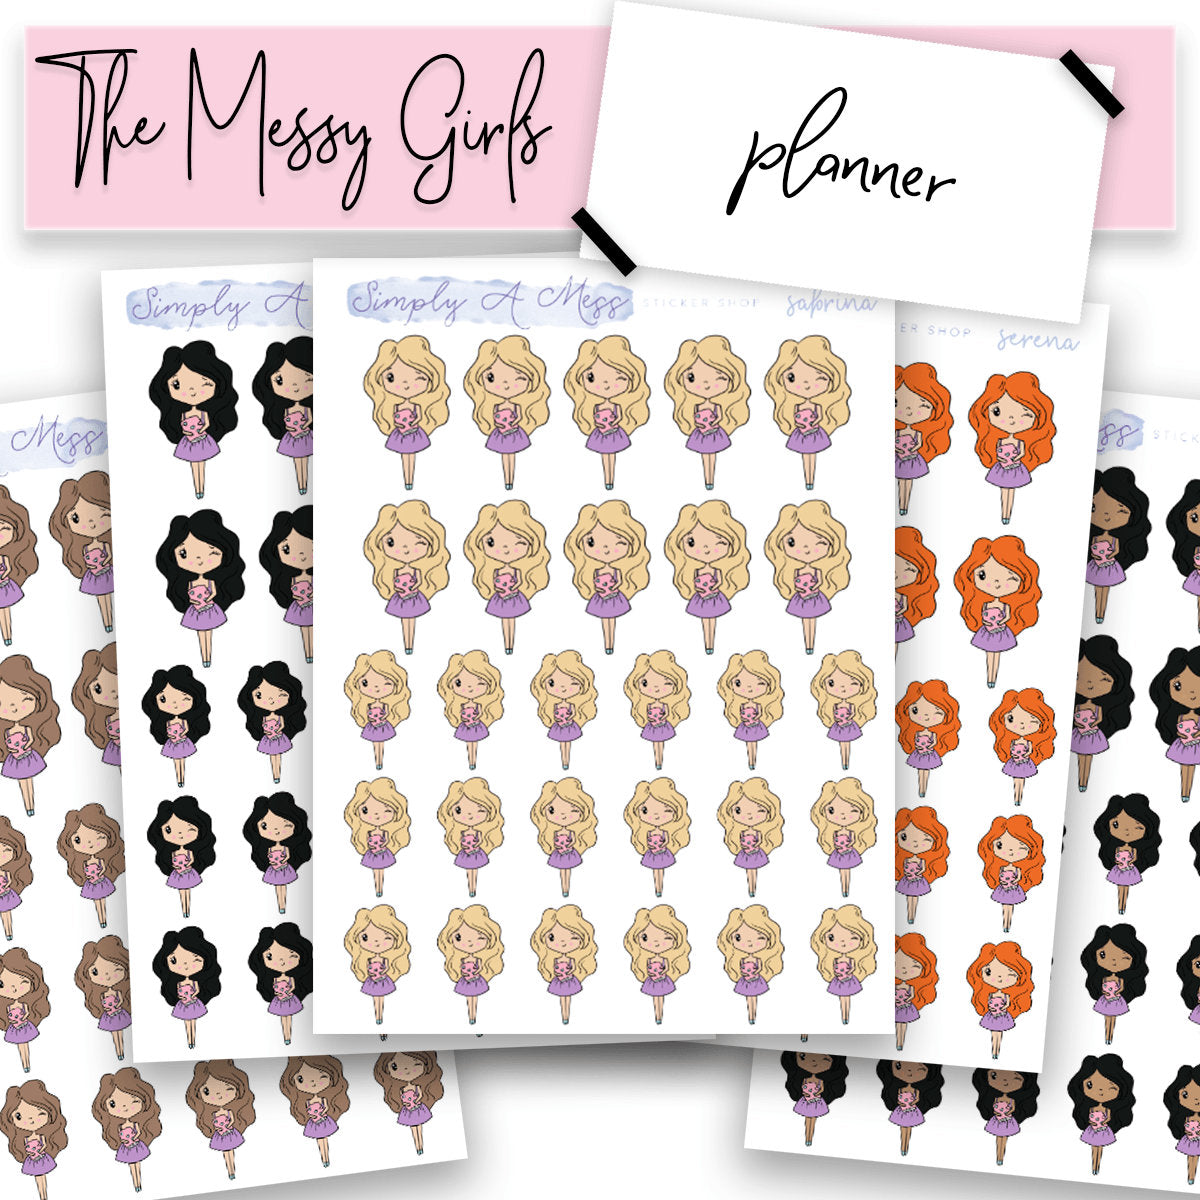 Planner | The Messy Girls